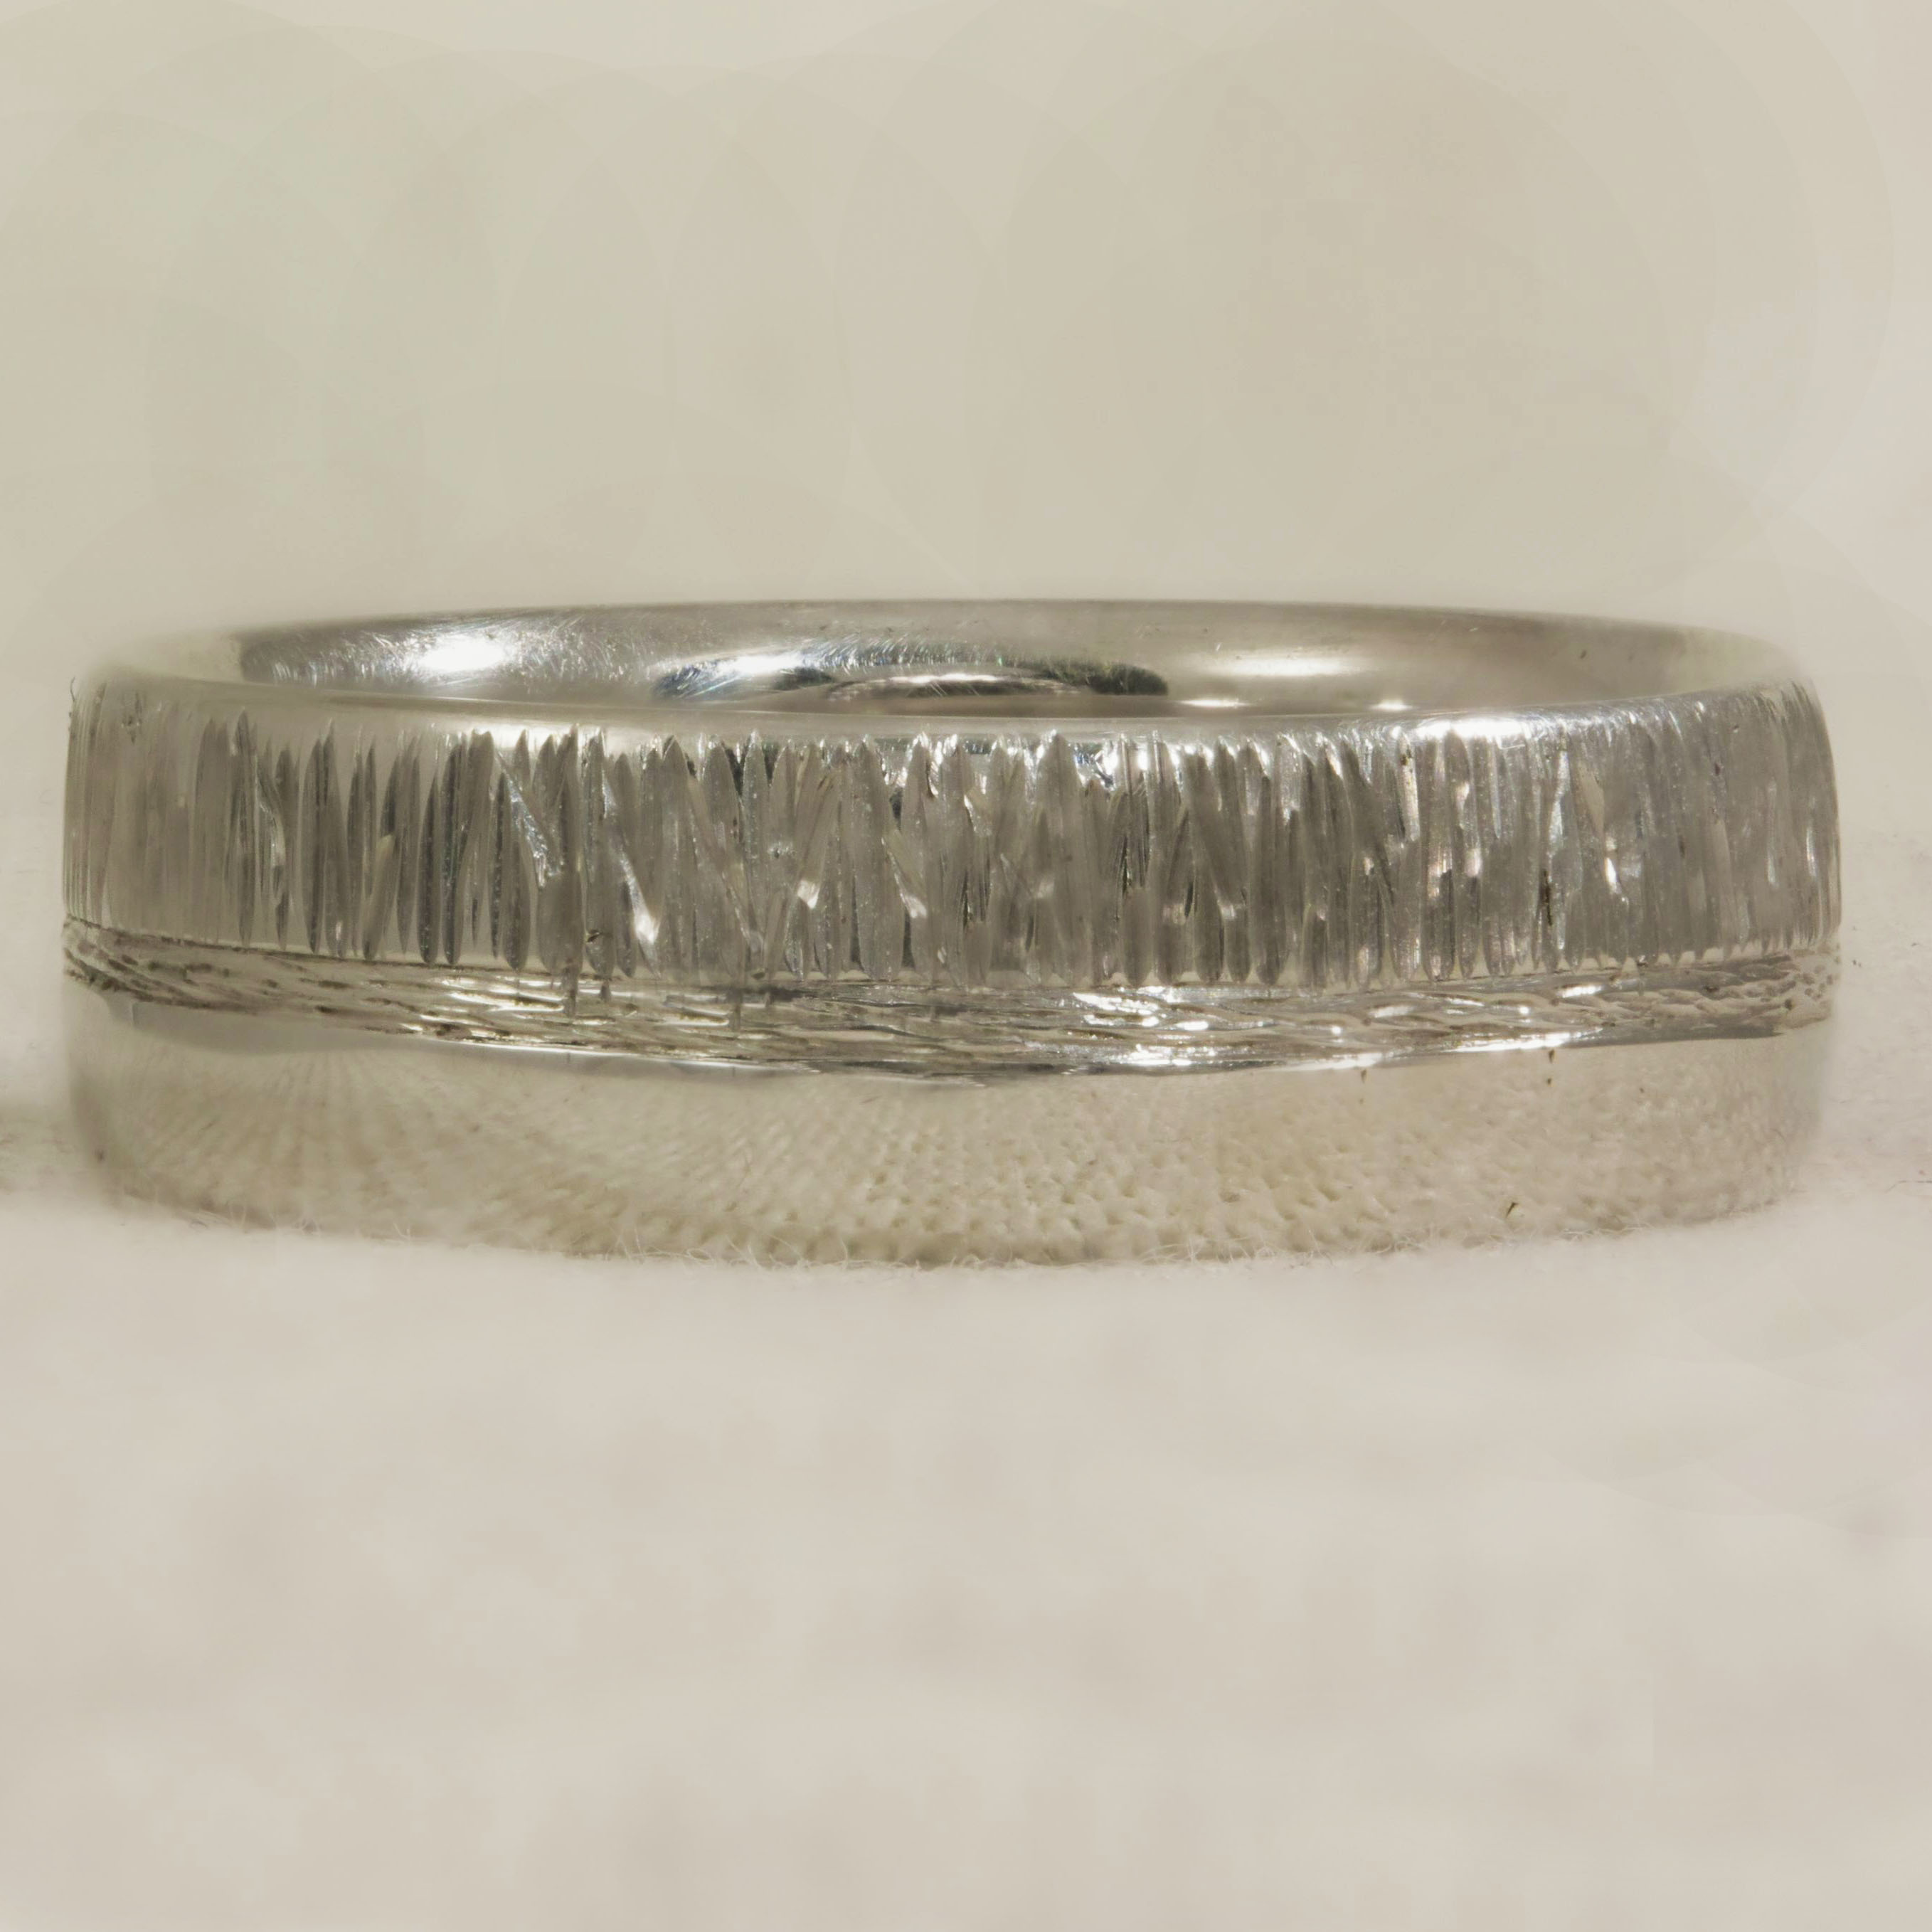 Half Bark effect half polish wedding ring